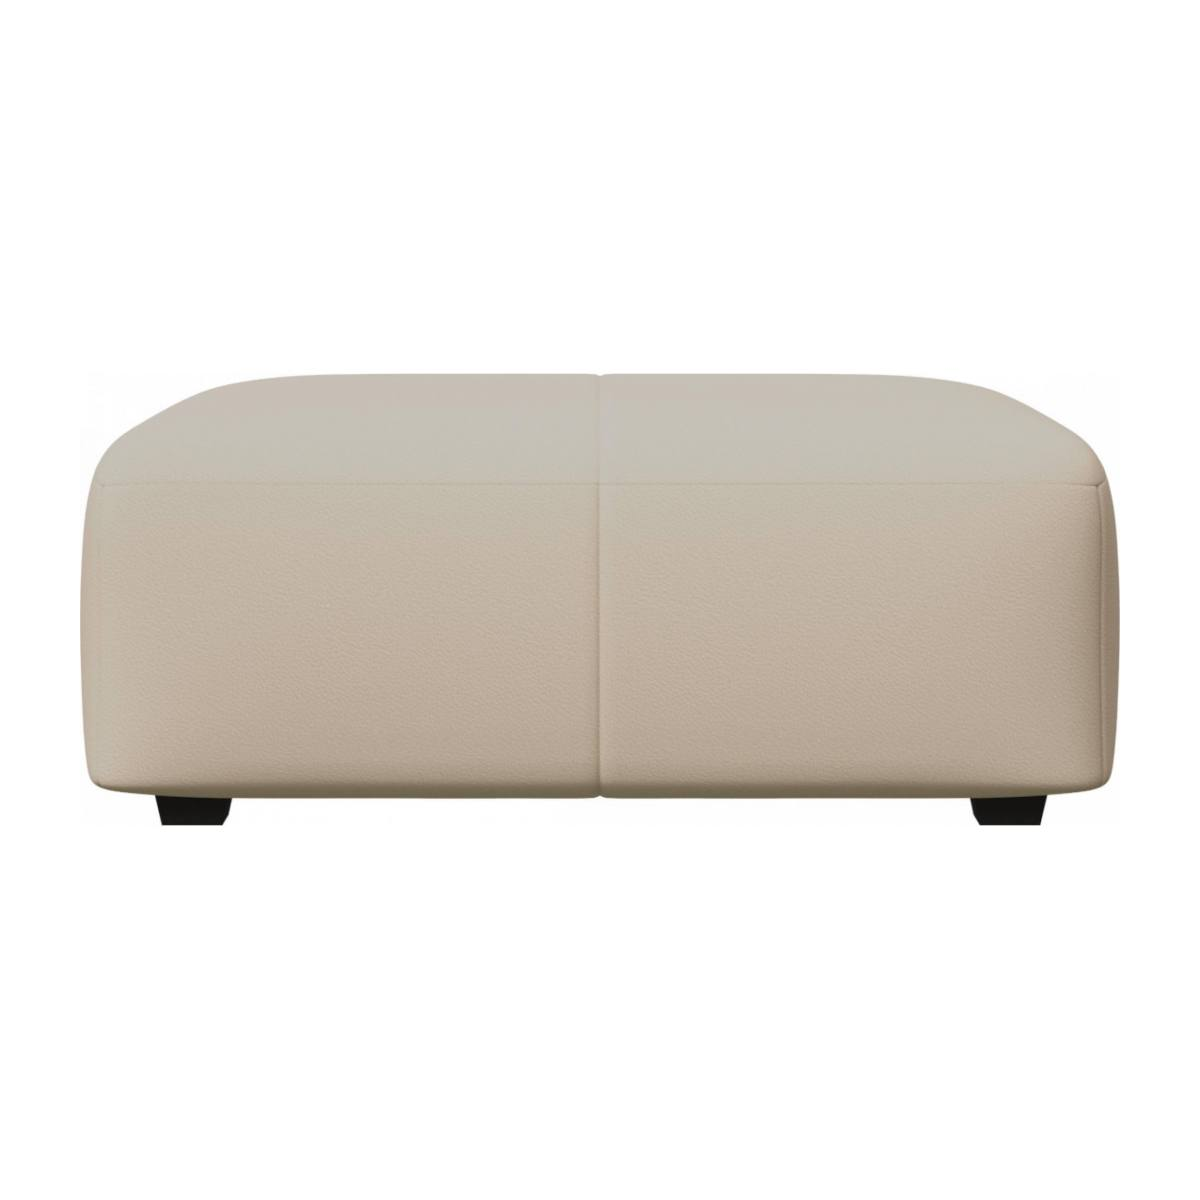 Footstool in Savoy semi-aniline leather, off white n°4